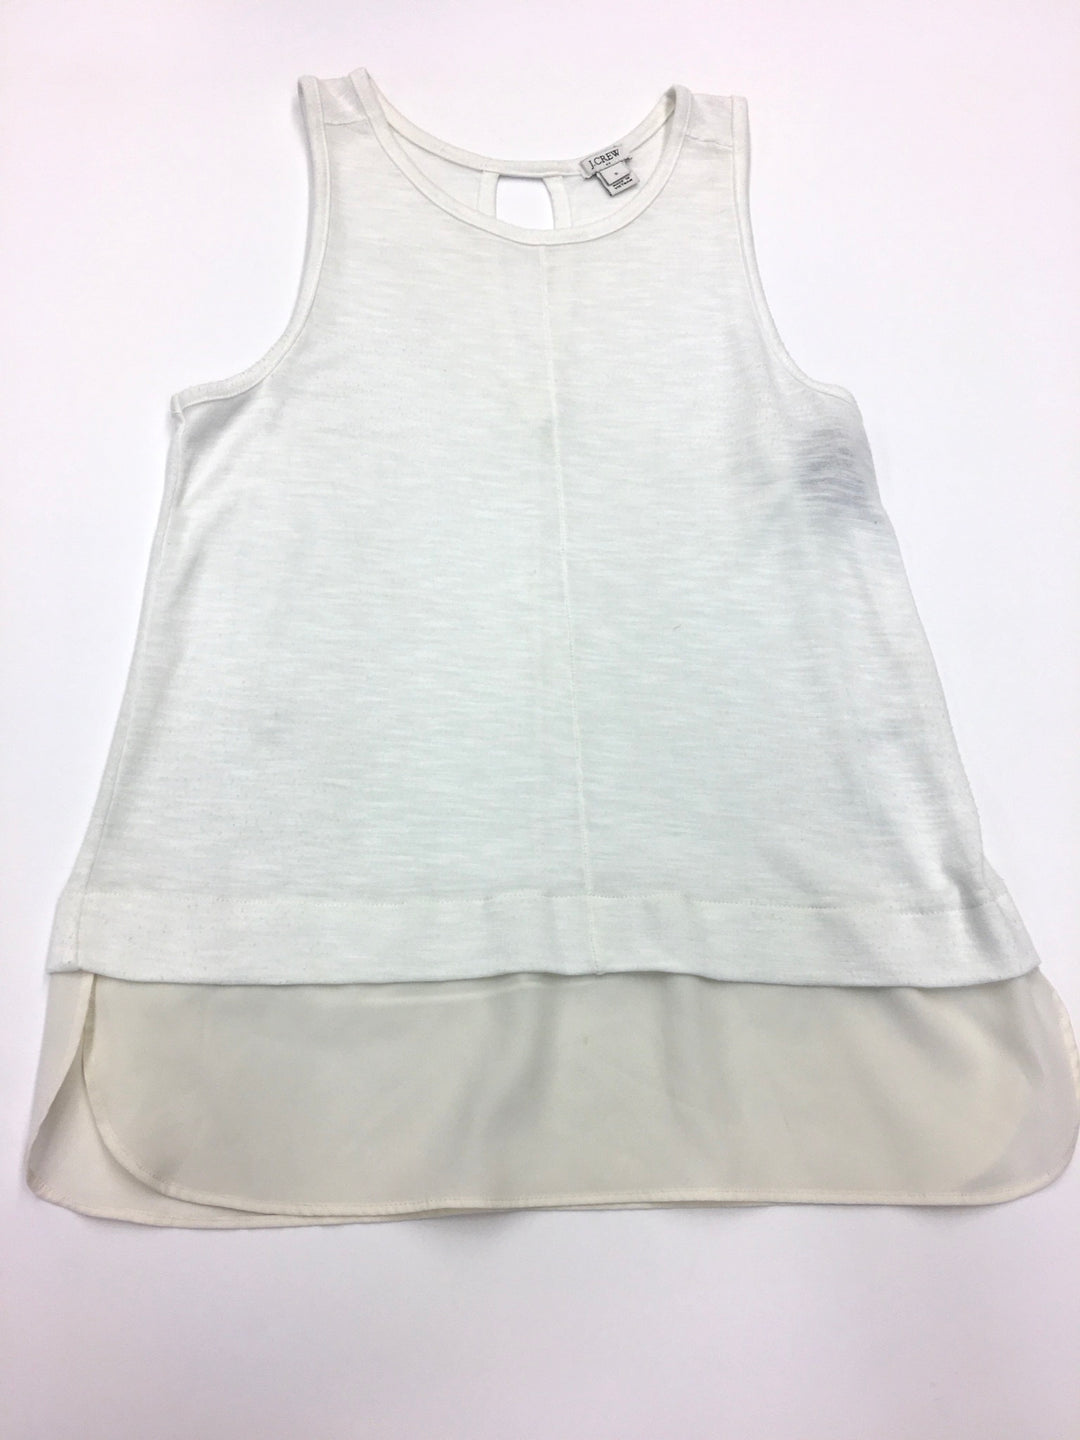 Primary Photo - BRAND: J CREW<BR>STYLE: TOP SLEEVELESS<BR>COLOR: WHITE<BR>SIZE: S<BR>SKU: 205-205299-7587